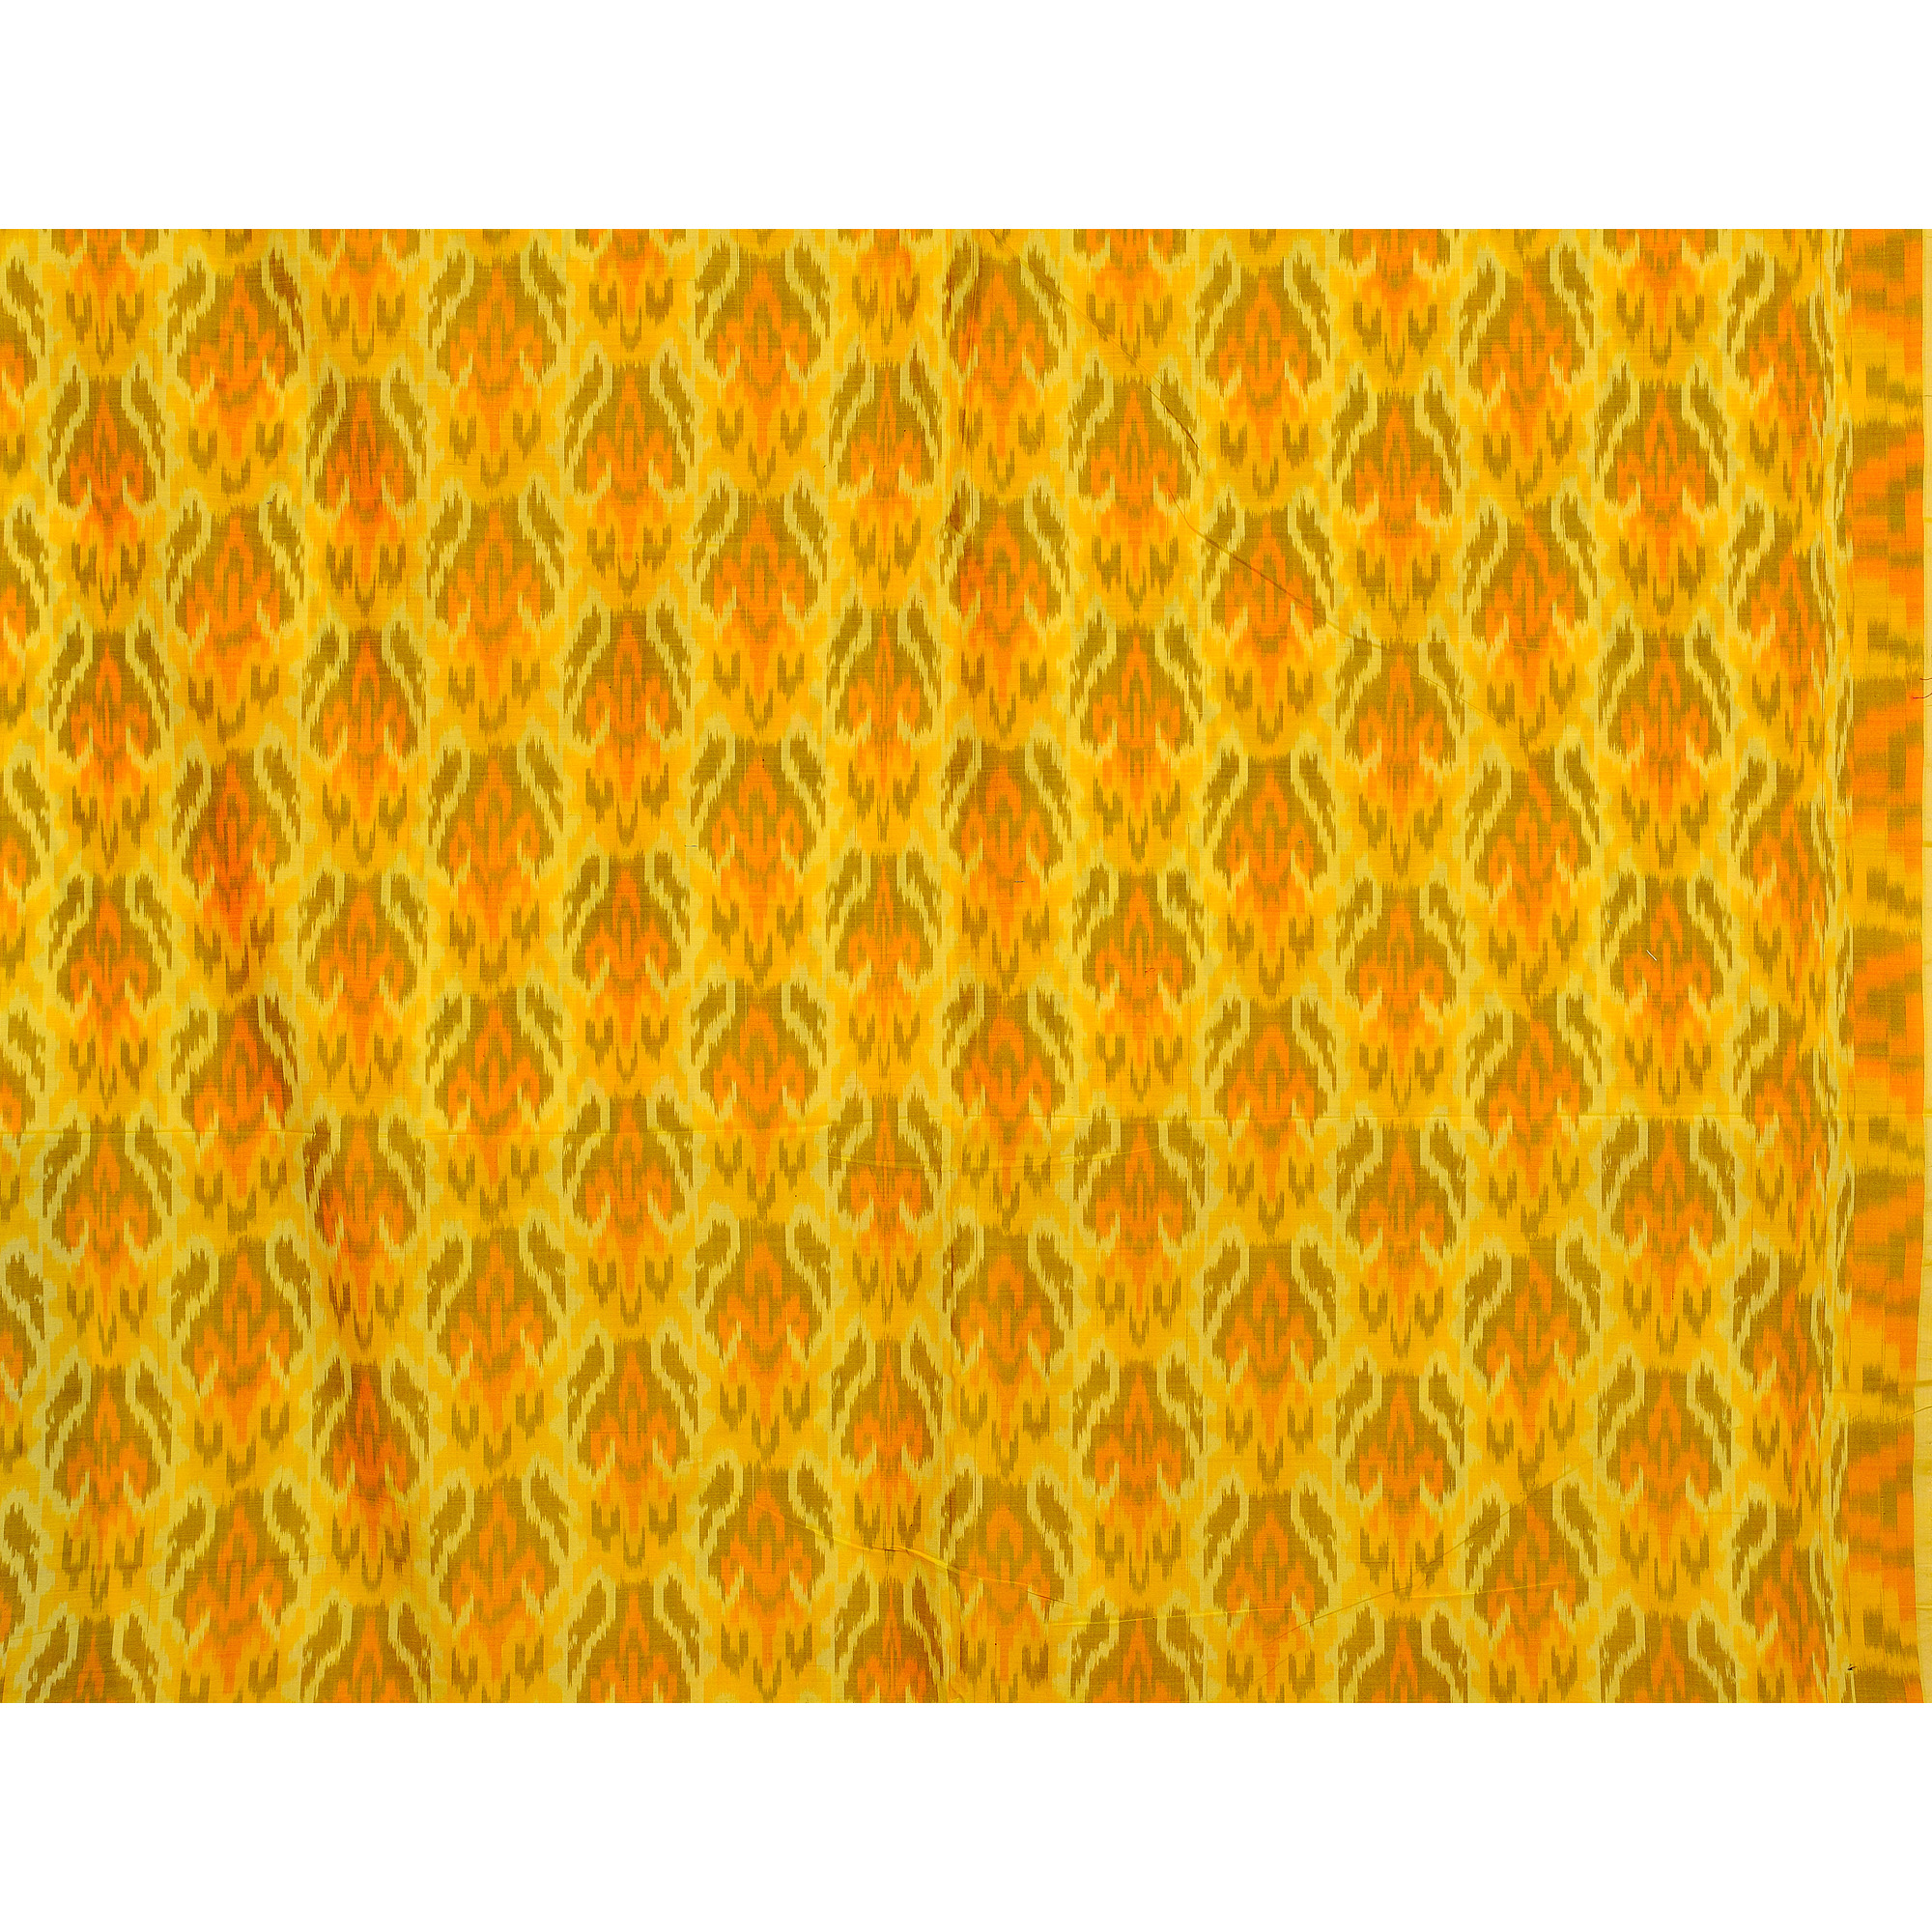 Yellow Handloom Fabric from Pochampally with Ikat Weave